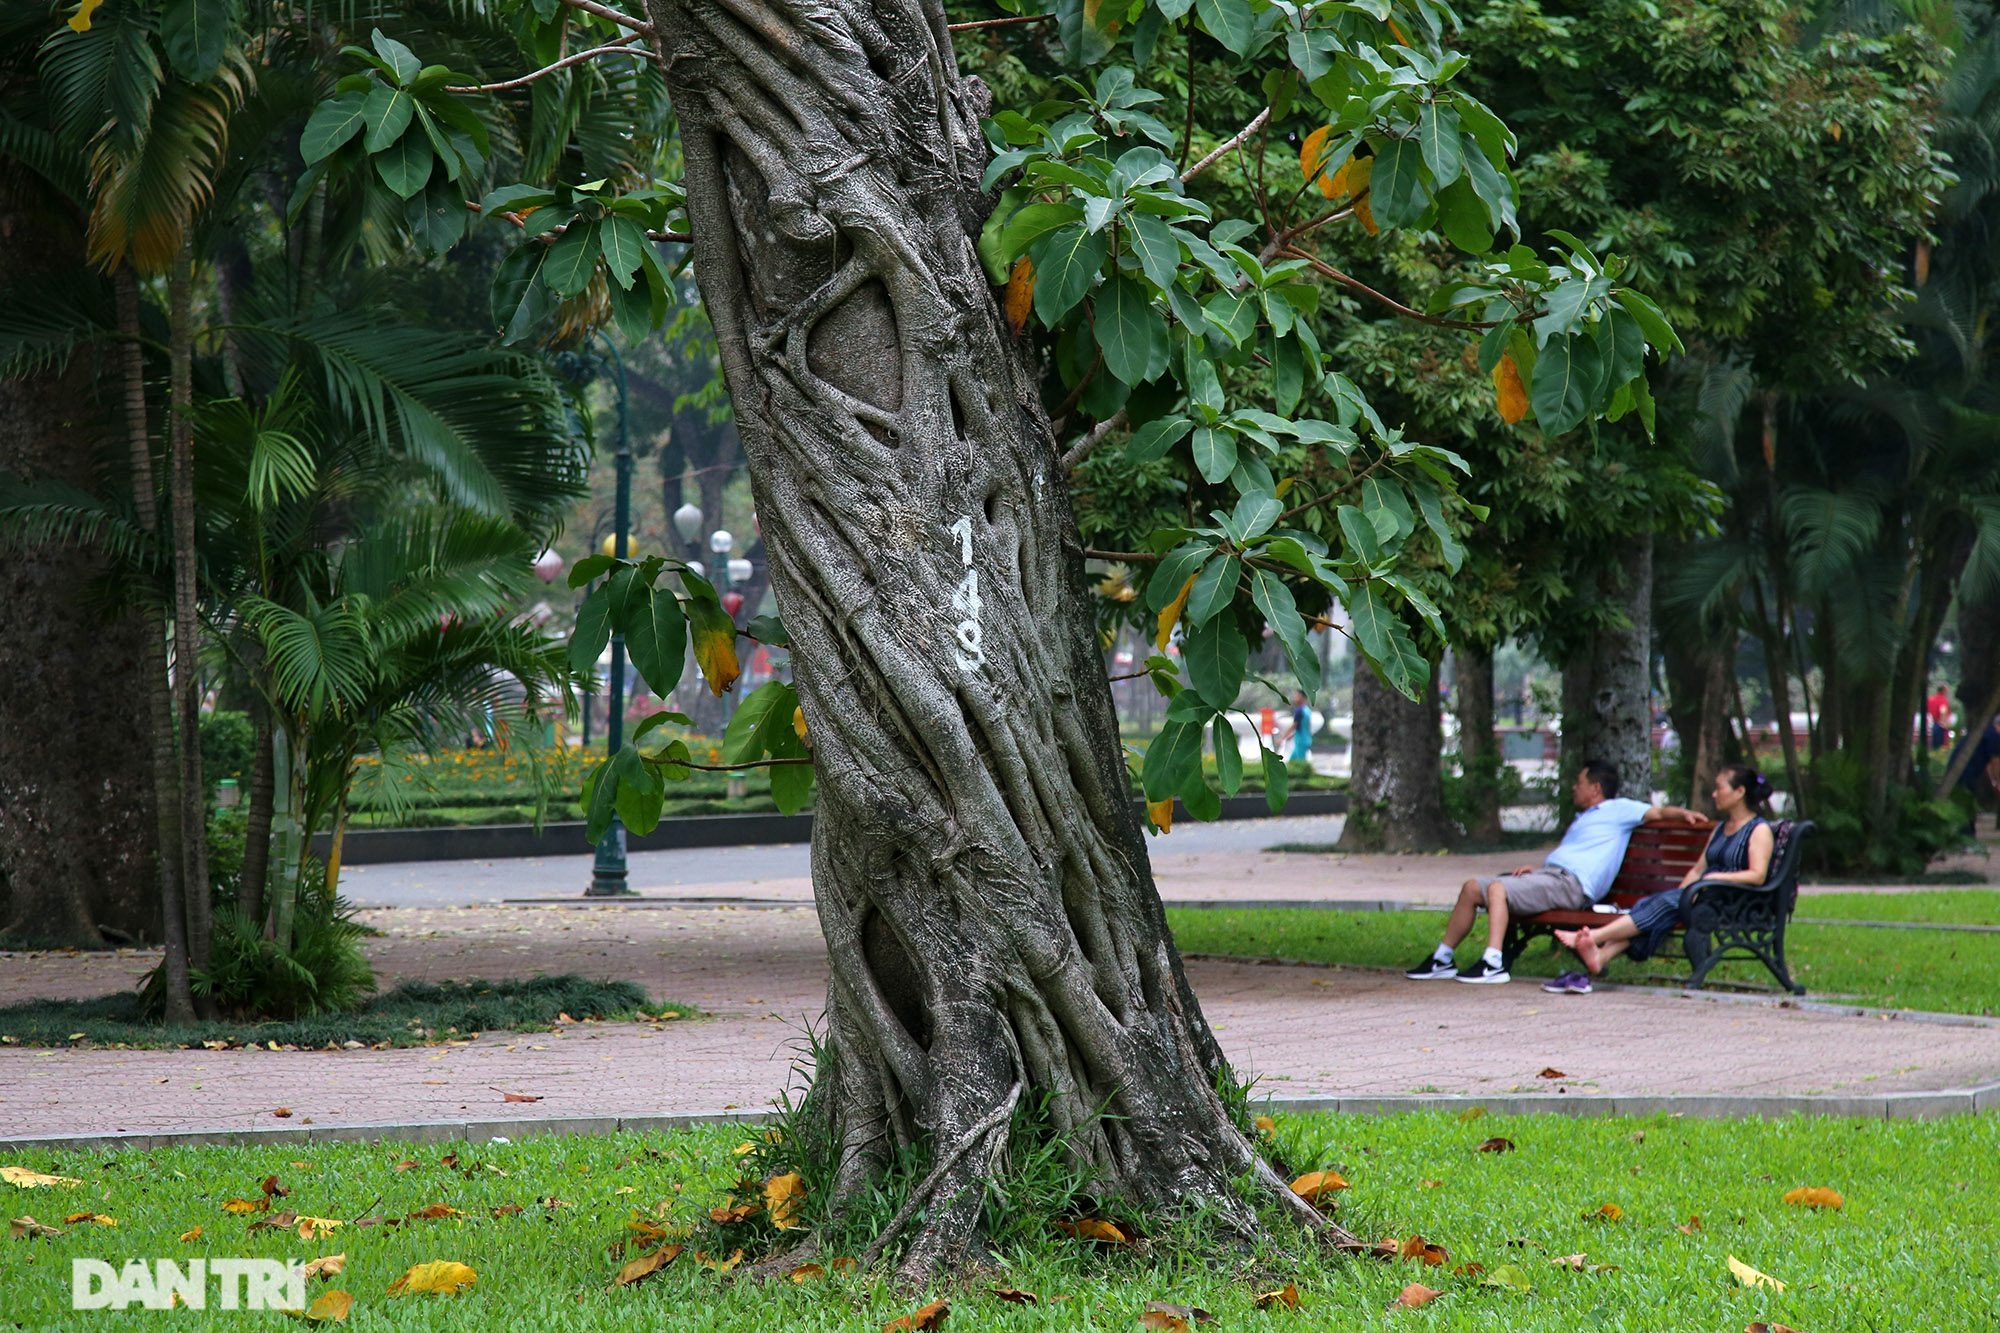 Little-known things about the largest park in Hanoi are about to turn 60 years old - 14 years old